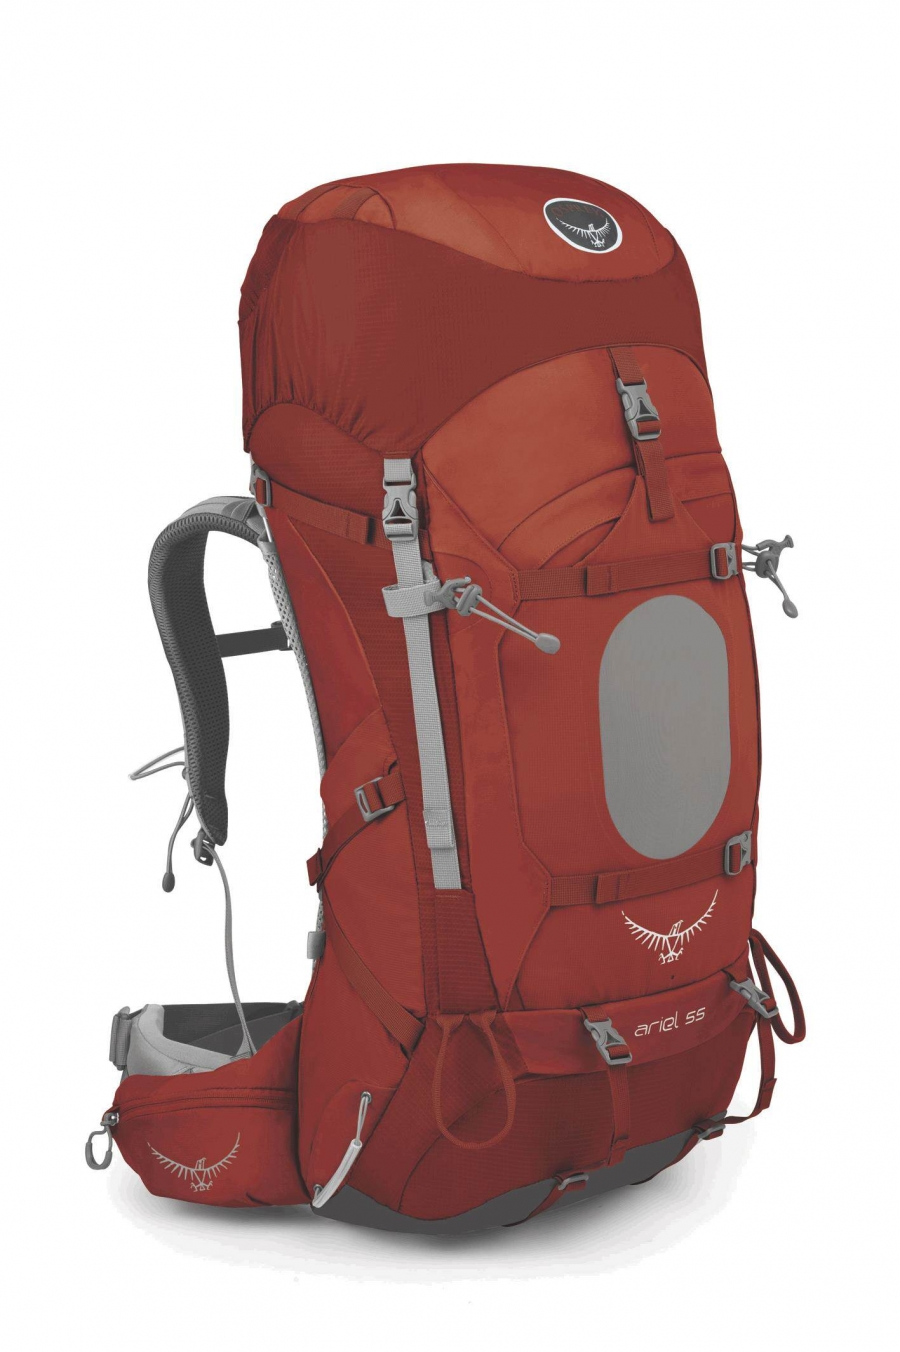 Kit review: Osprey Ariel Women's Rucksack Reviewed